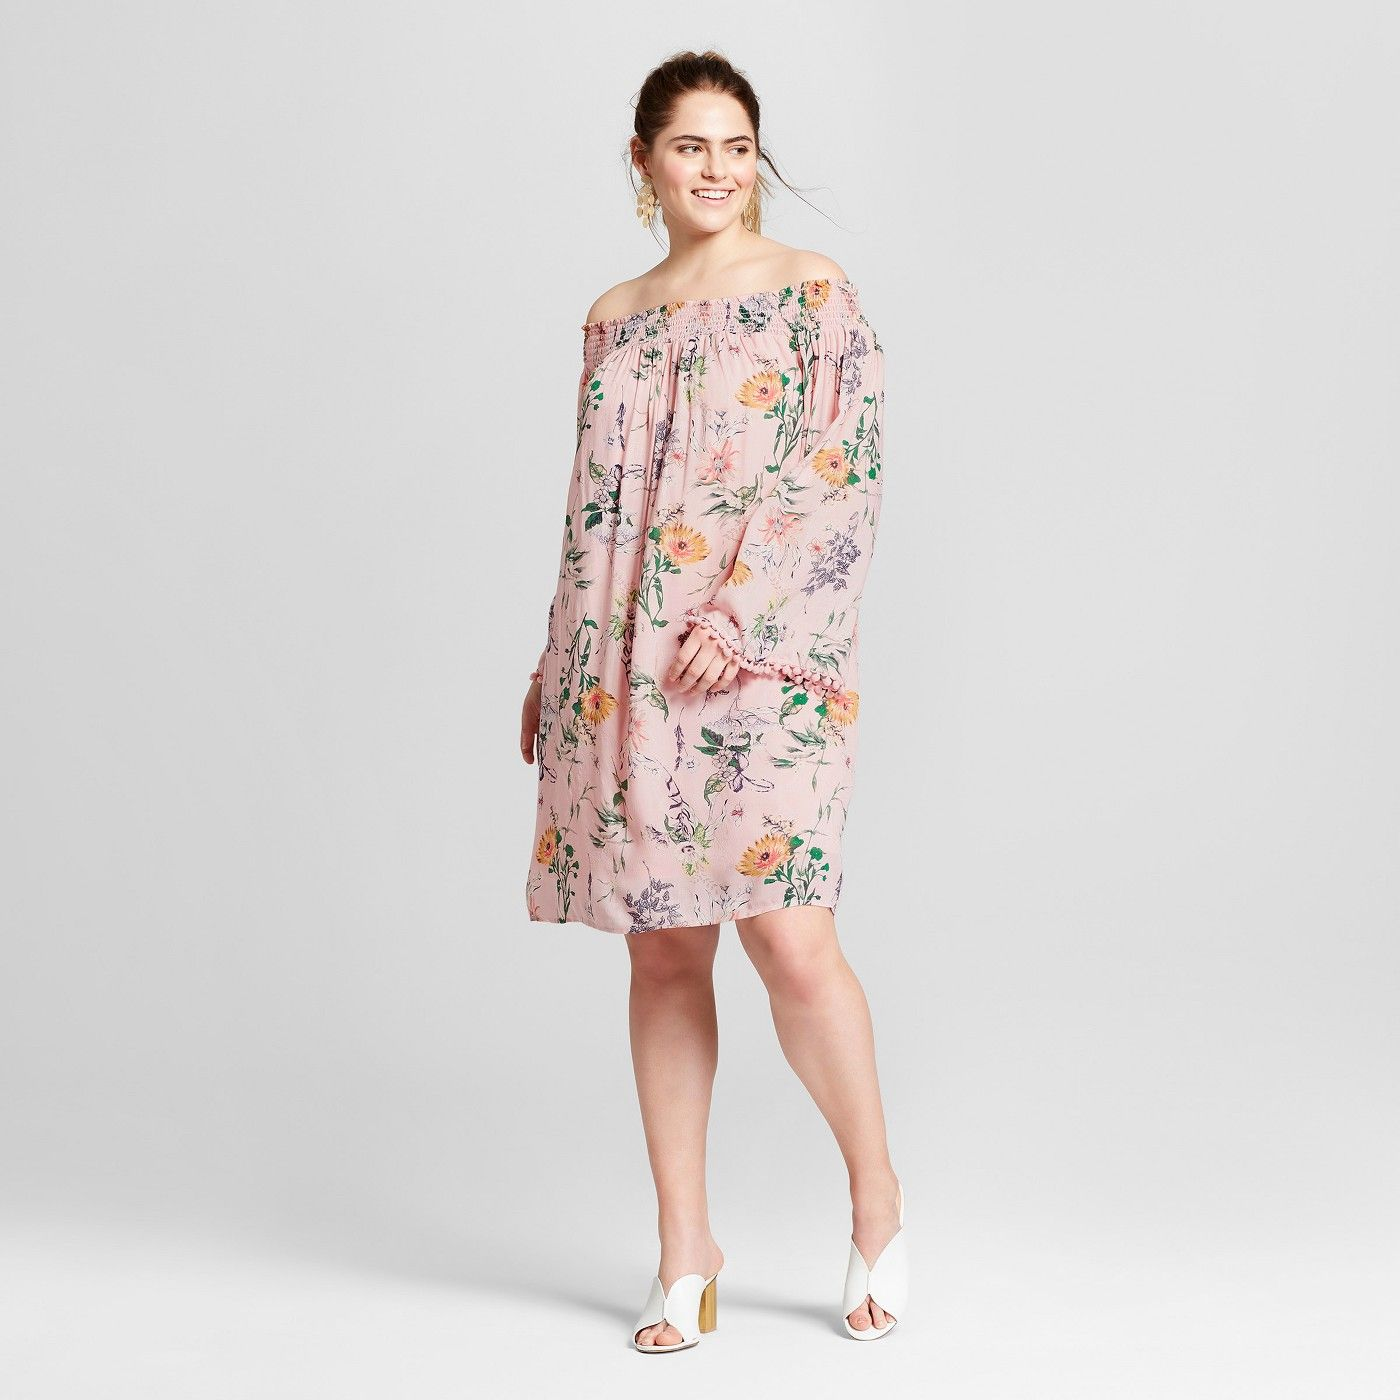 9565fedf17b730 Women's Plus Size Floral Print Off the Shoulder Dress - Xhilaration™ Blush  - image 1 of 2